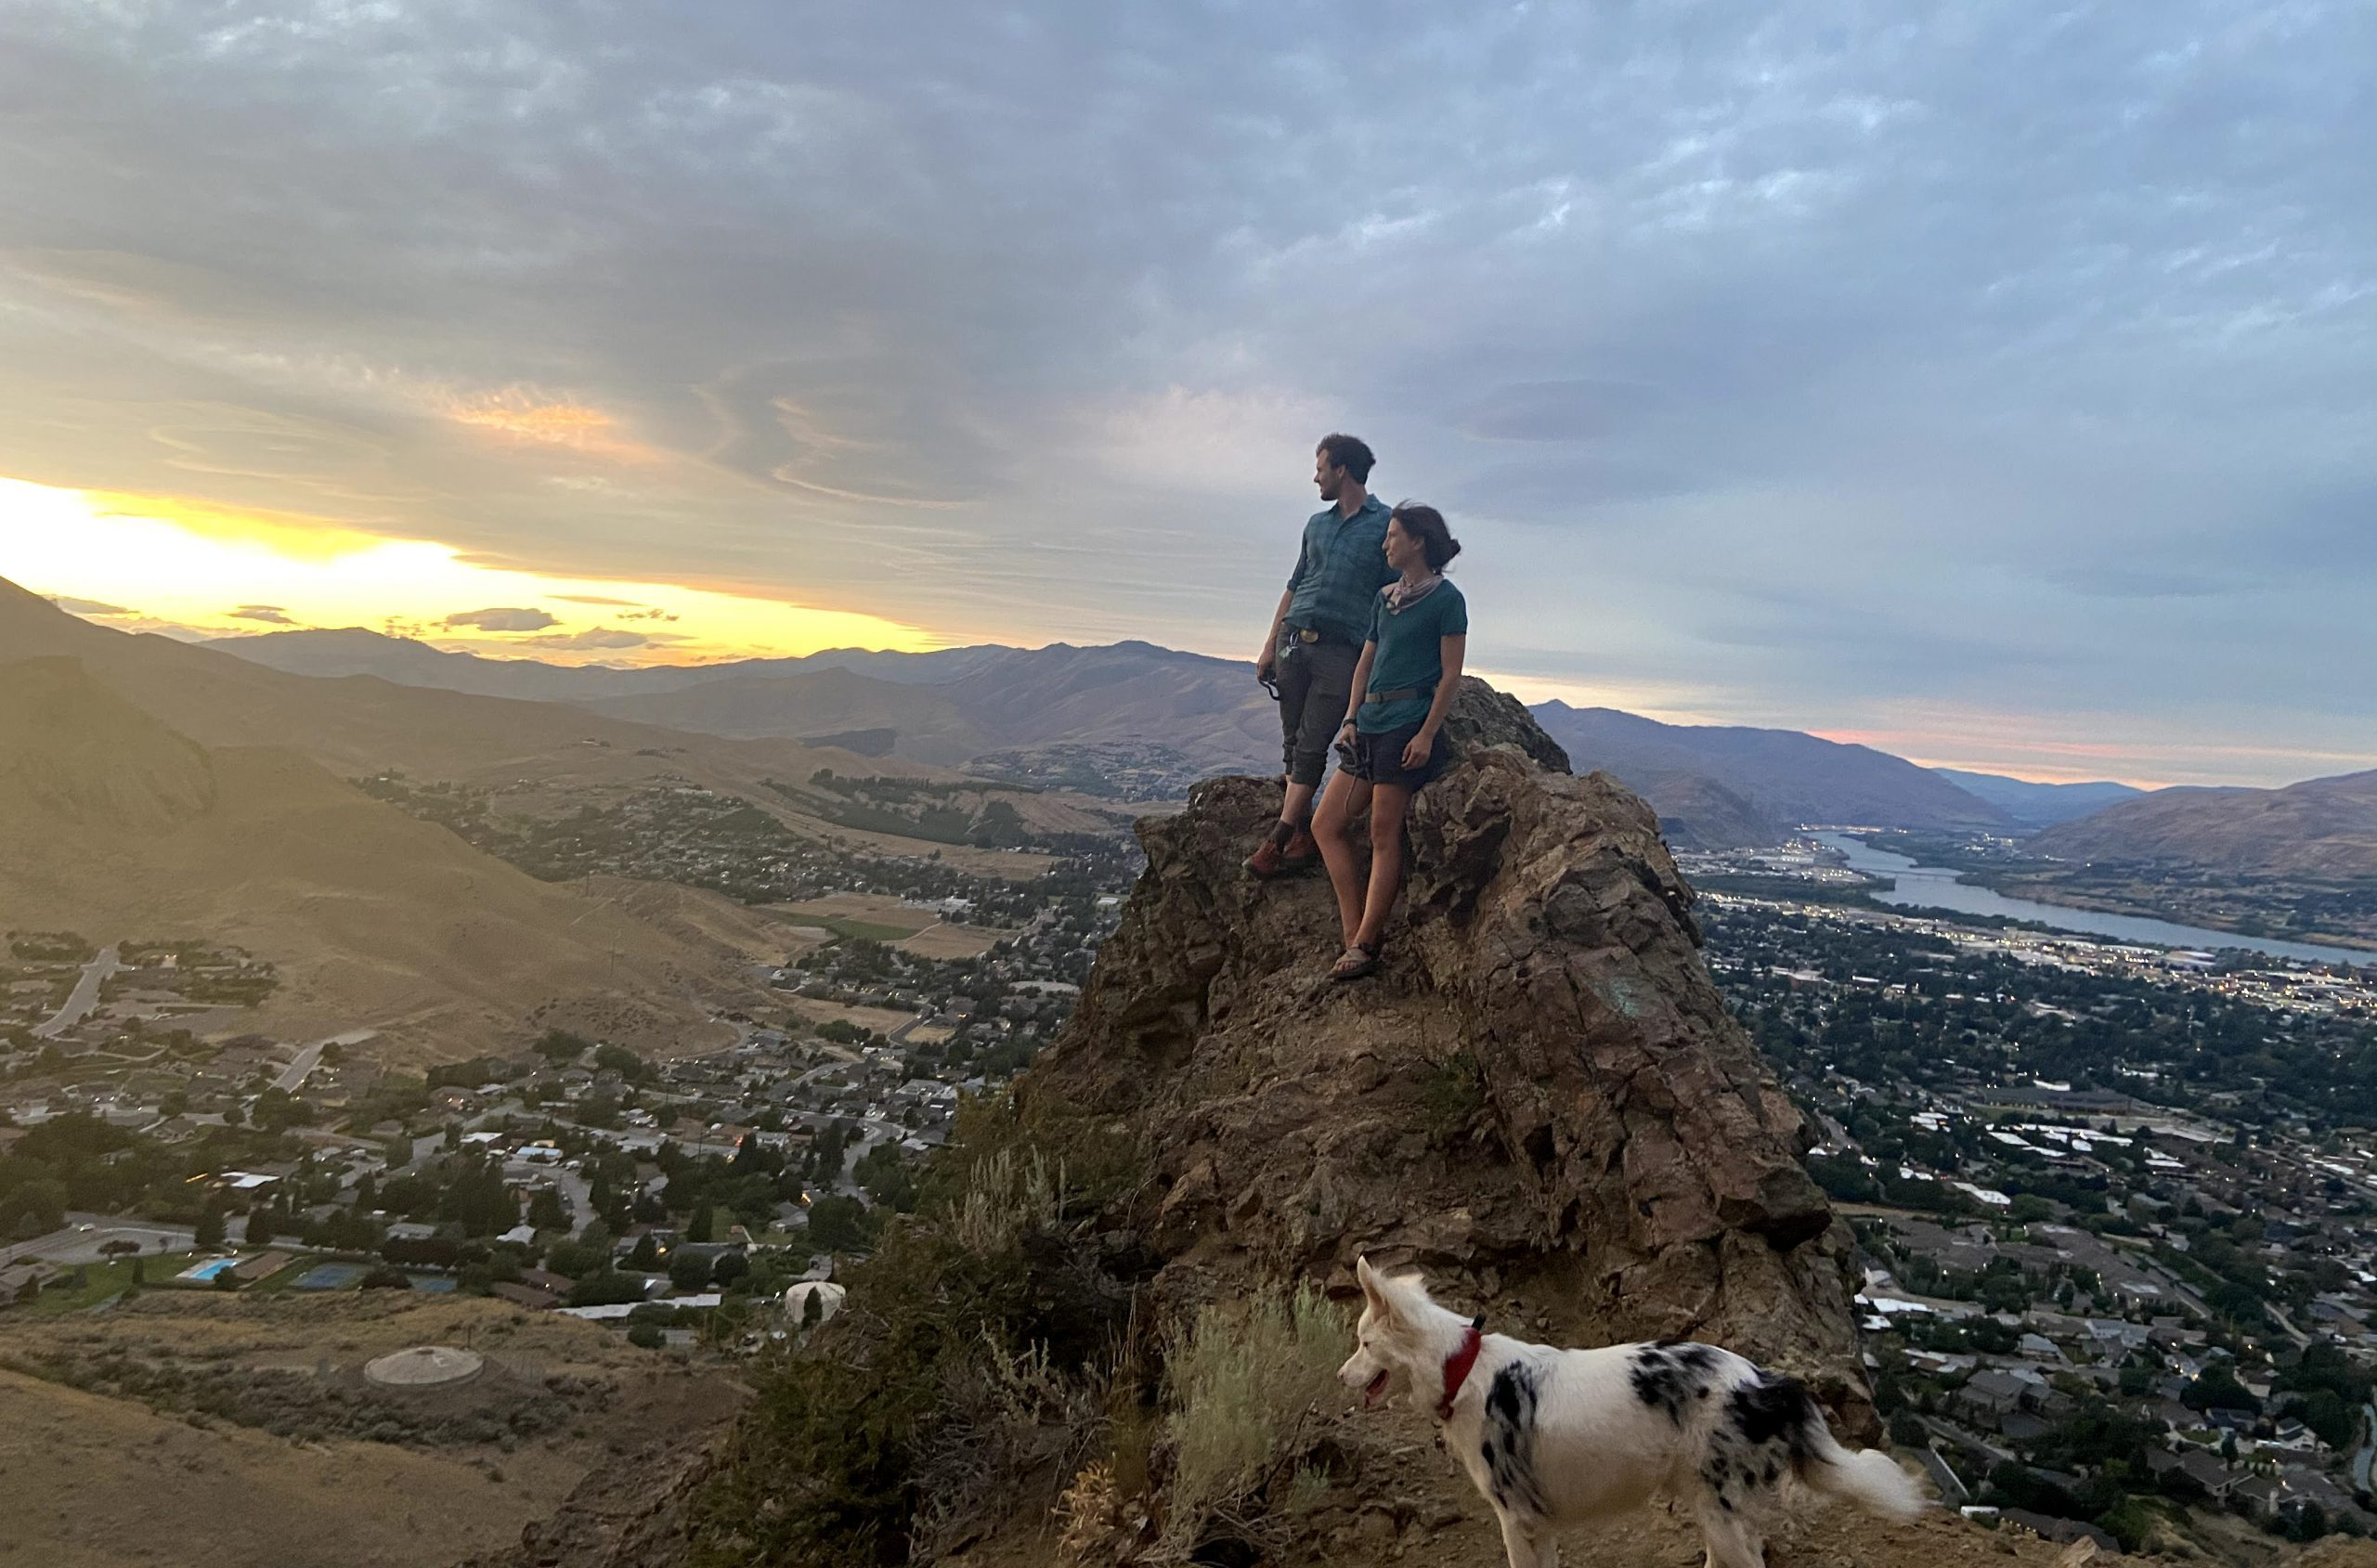 two people standing on a rocky spire at sunset with the town of wenatchee far below. a white dog with black spots is in the foreground